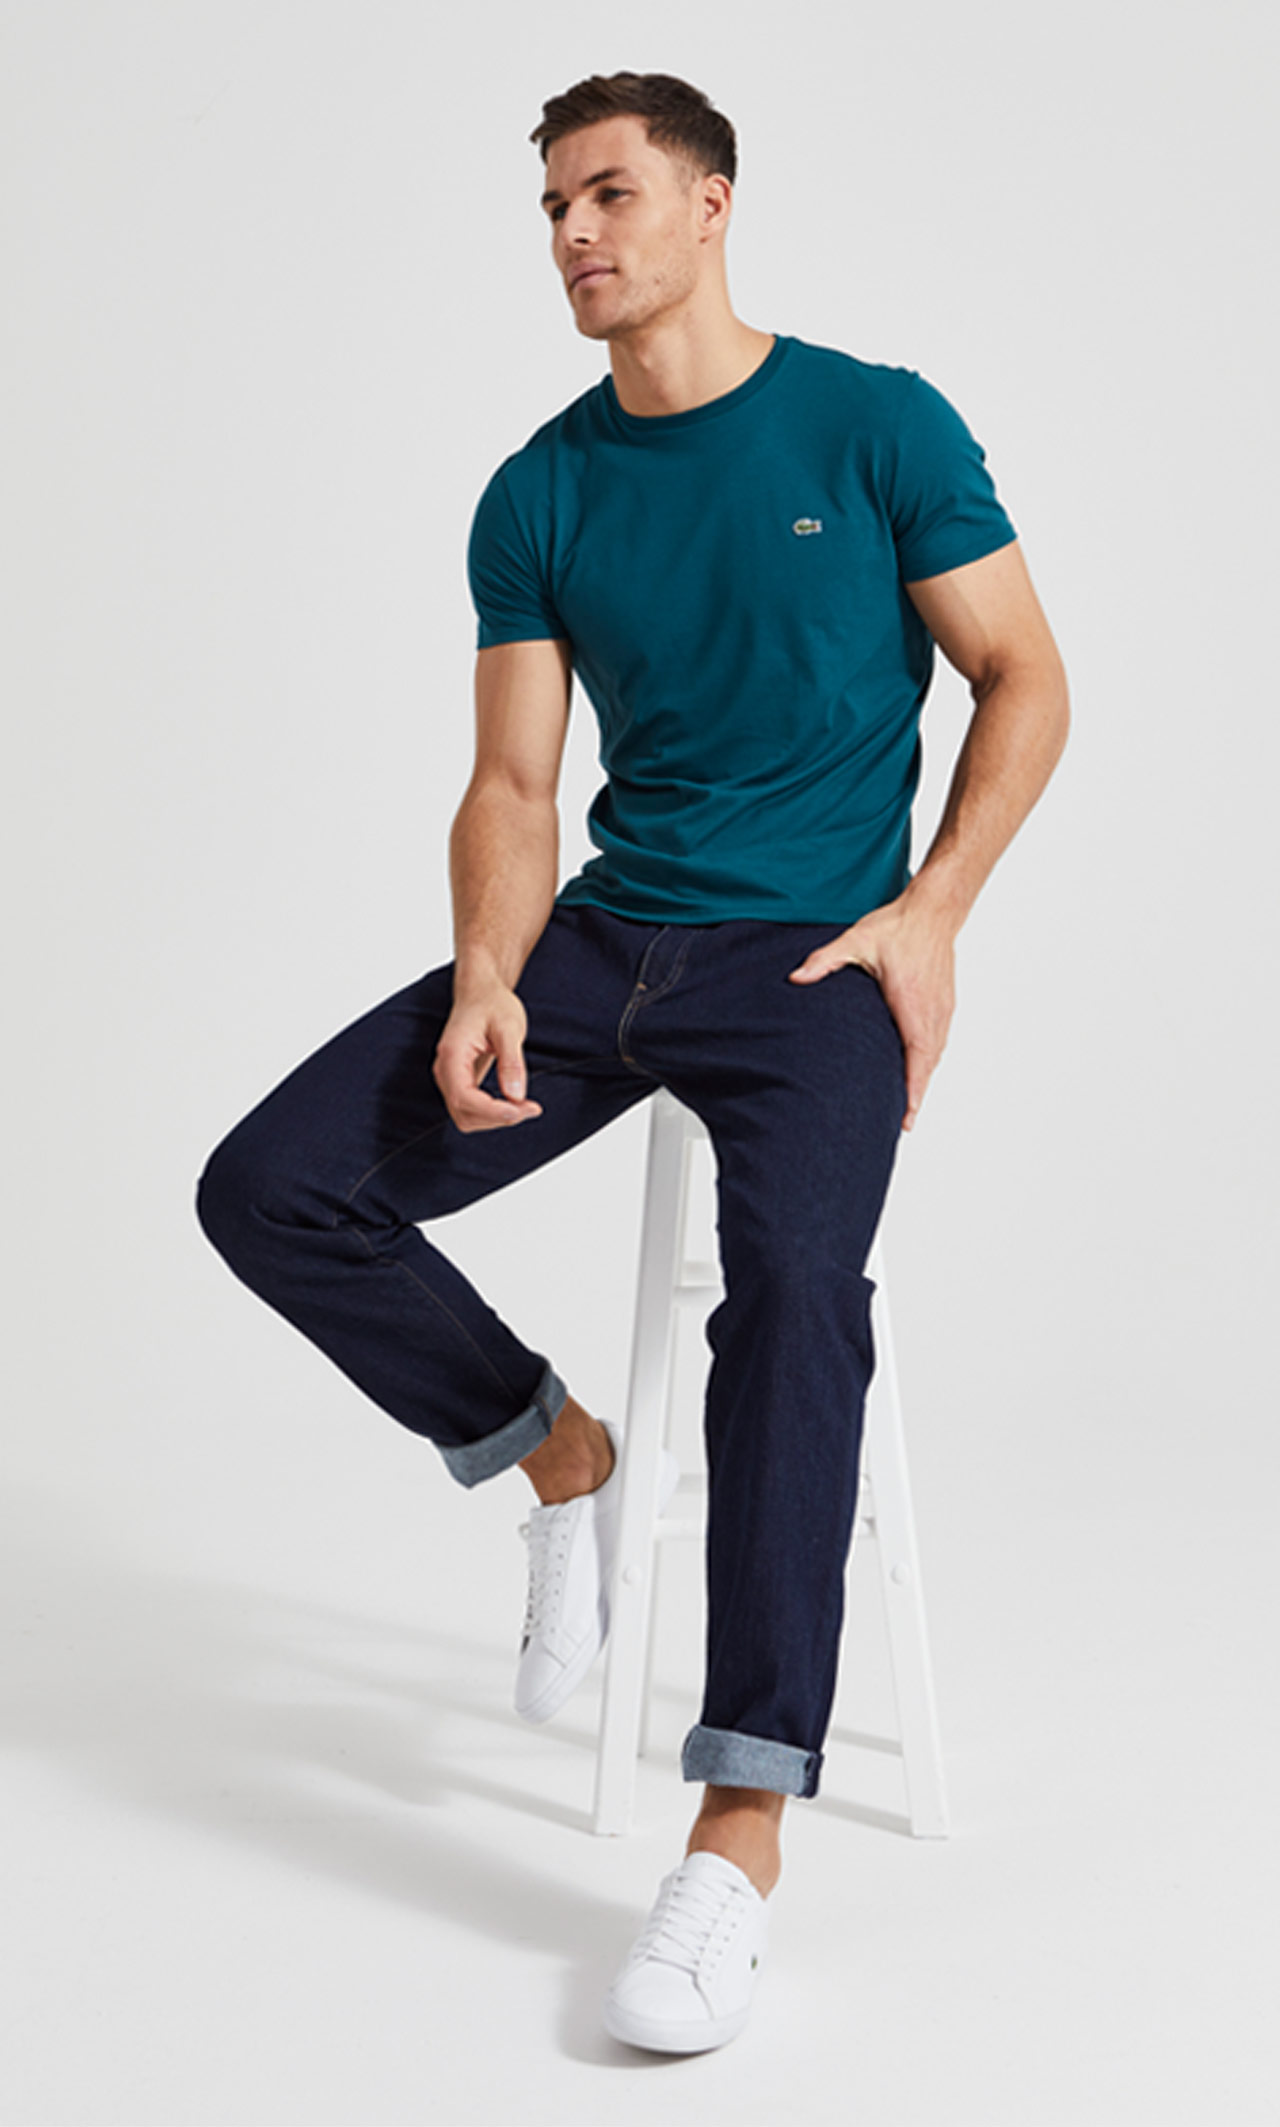 Model wearing Lacoste clothes